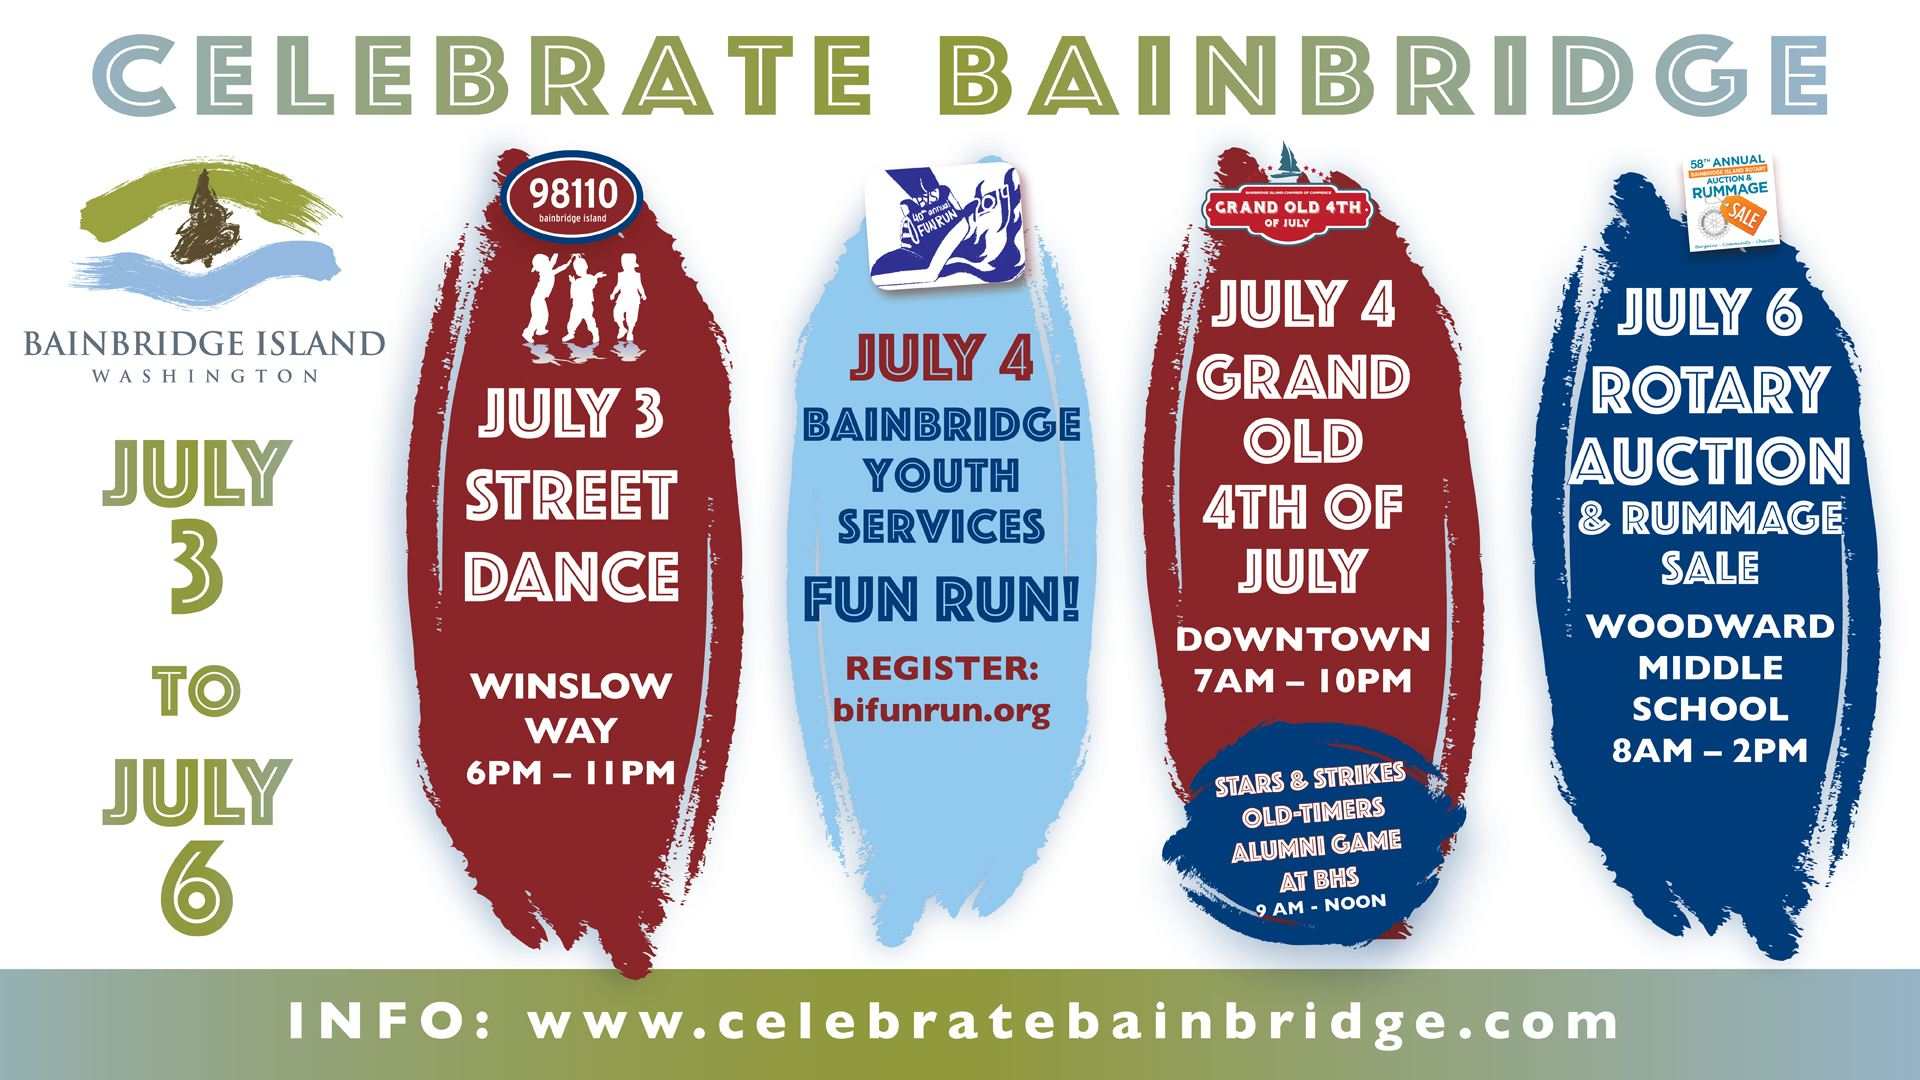 Celebrate Bainbridge 2019